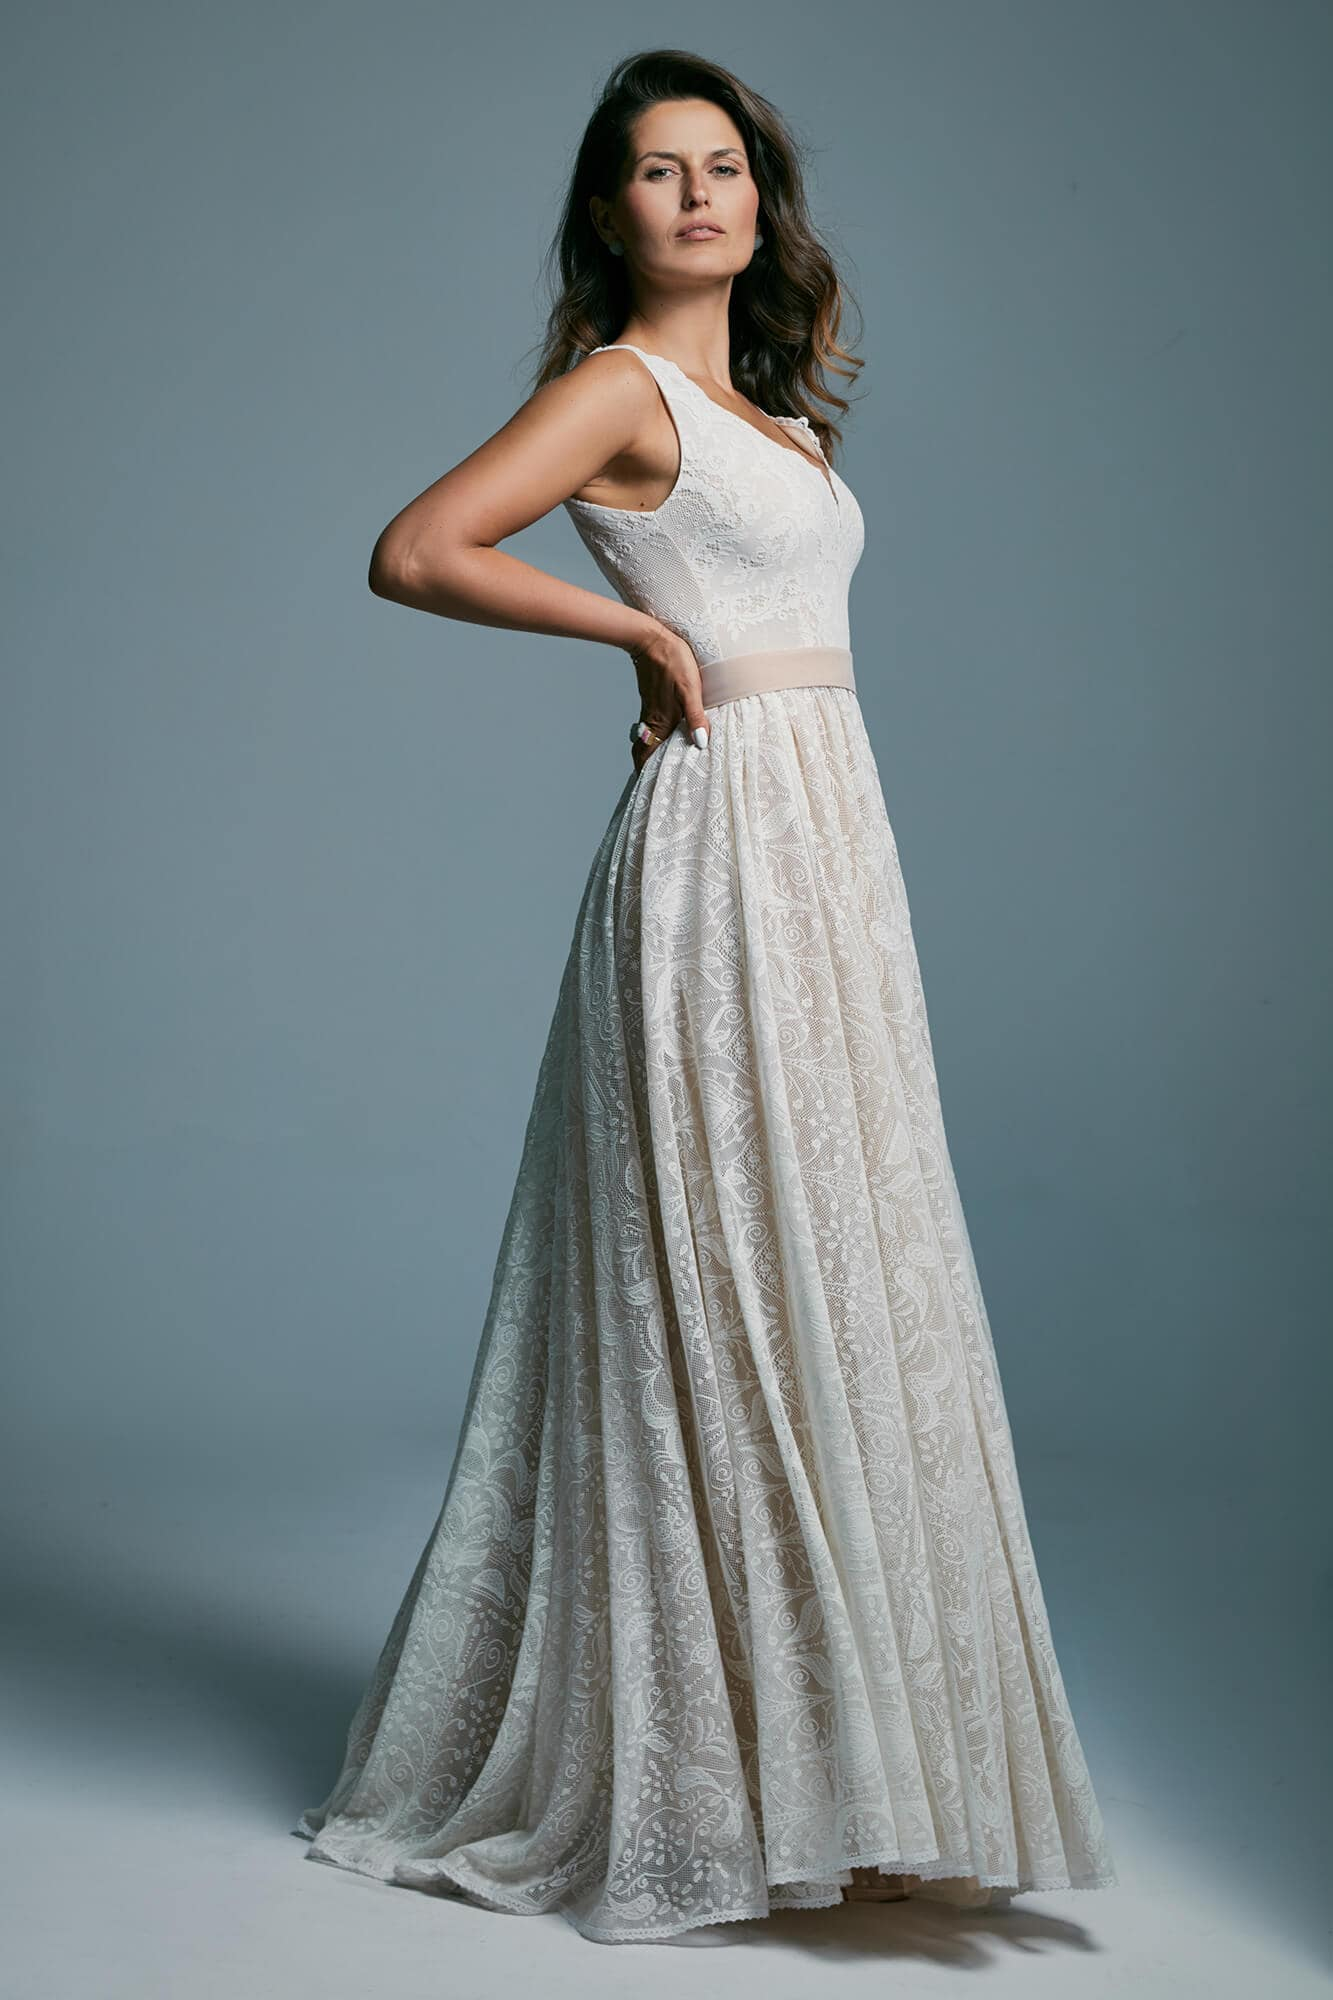 A beautiful, conservative wedding dress with an extremely fashionable cut Porto 45